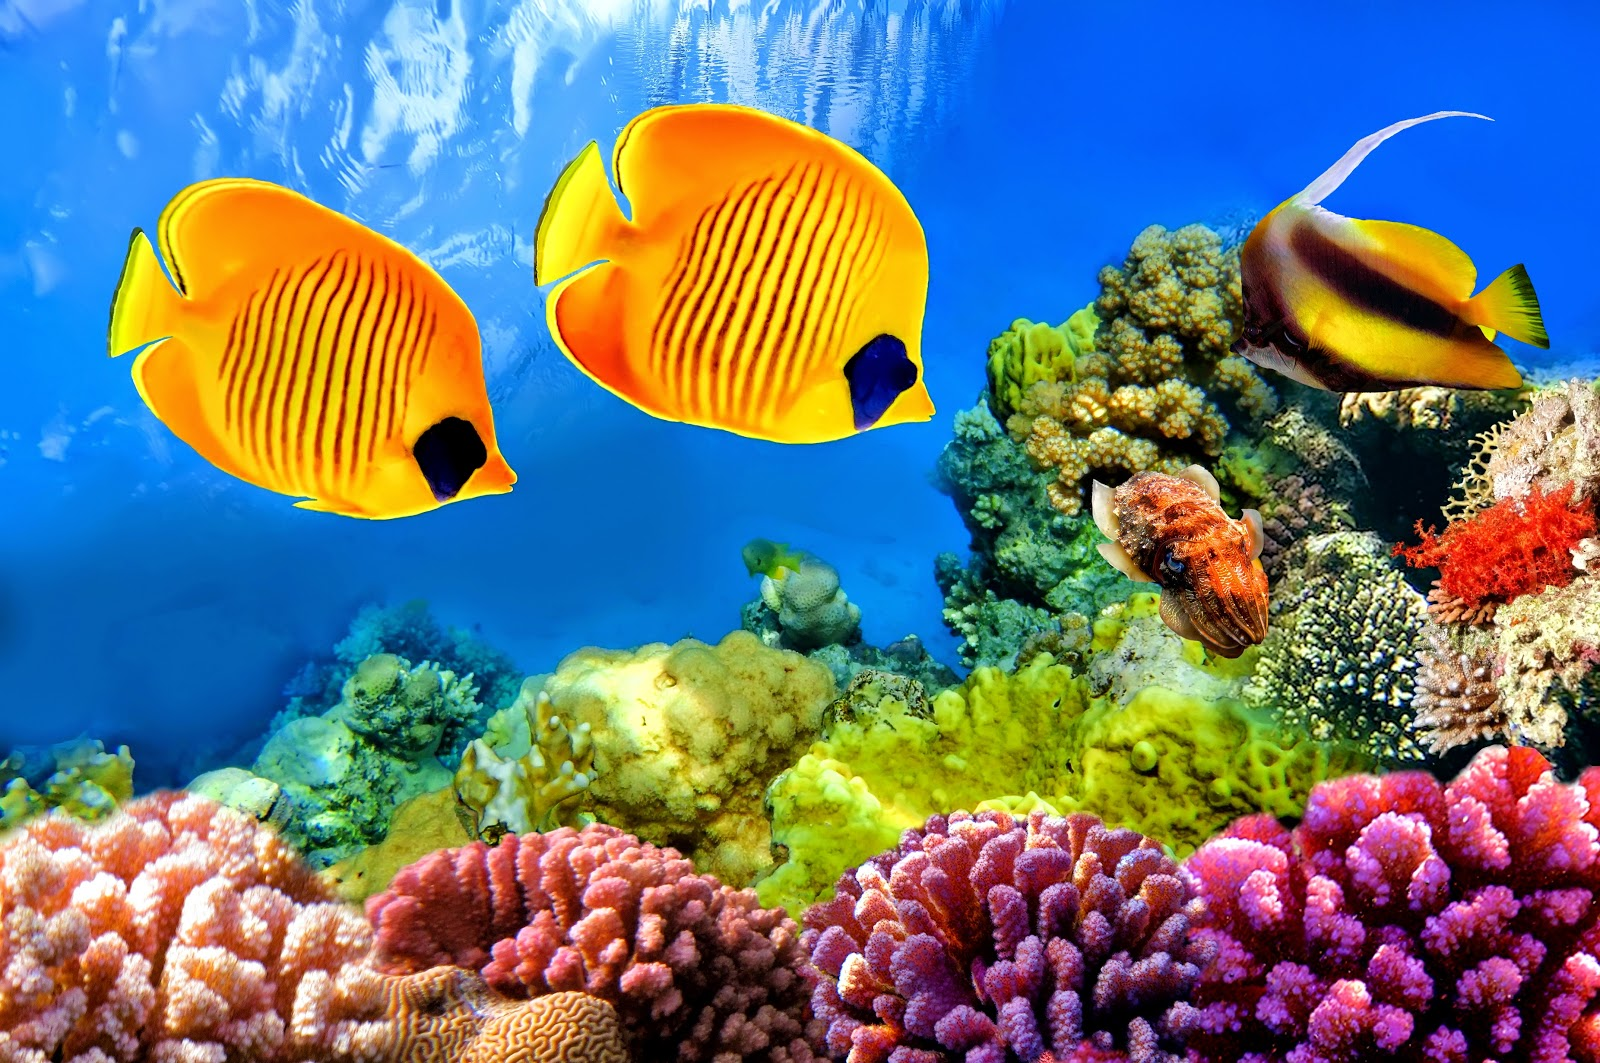 Coral Reef Fish - HD Wallpapers | Earth Blog